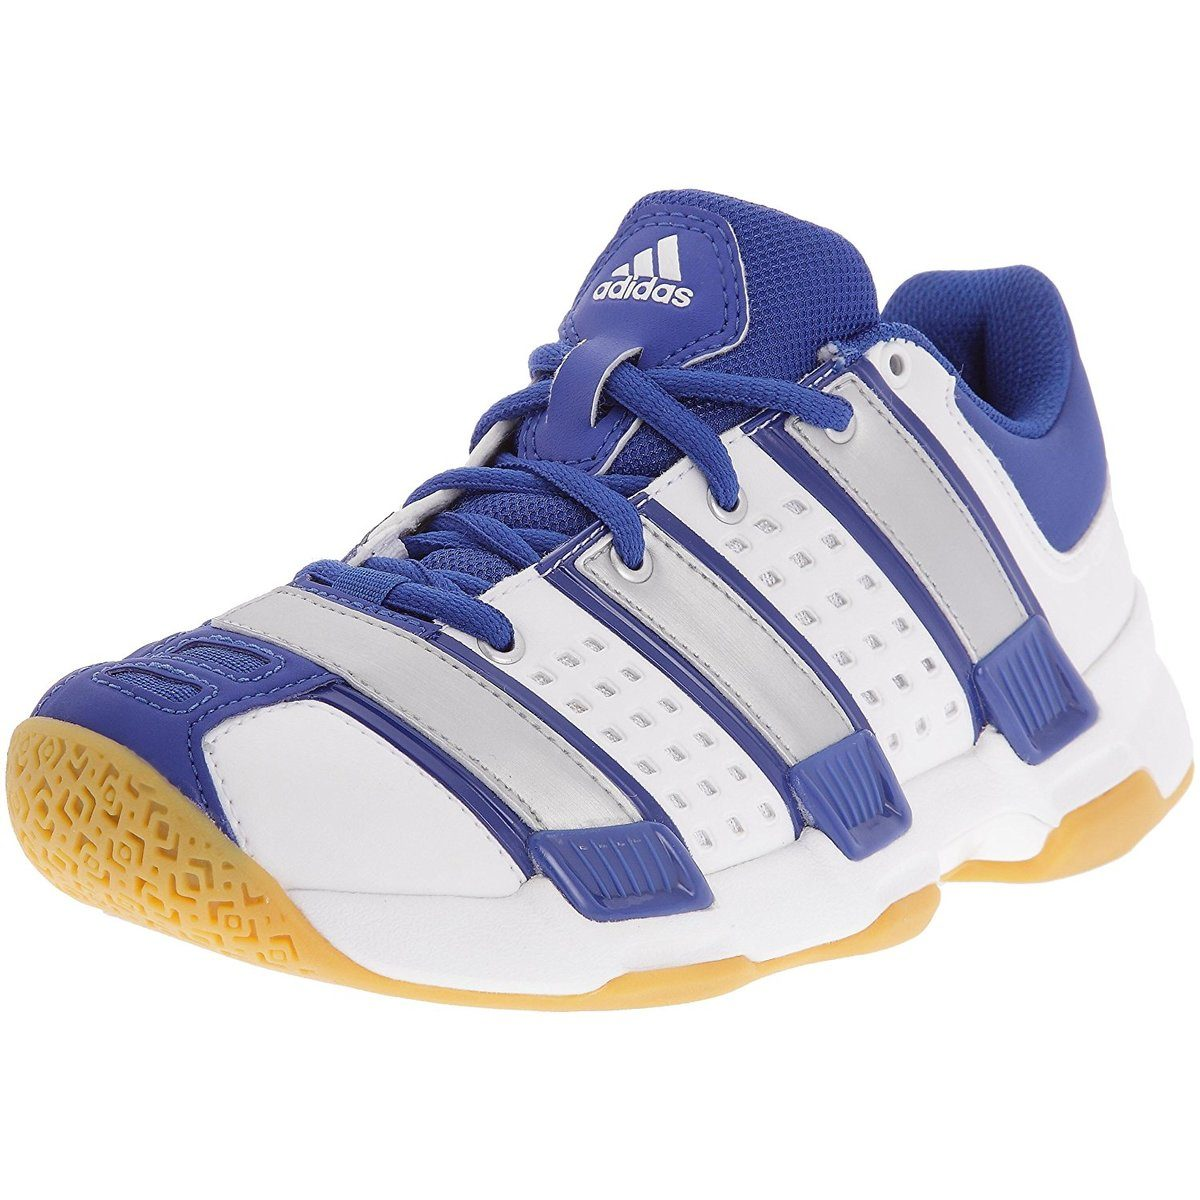 adidas-court-stabil-5-women-white-blue